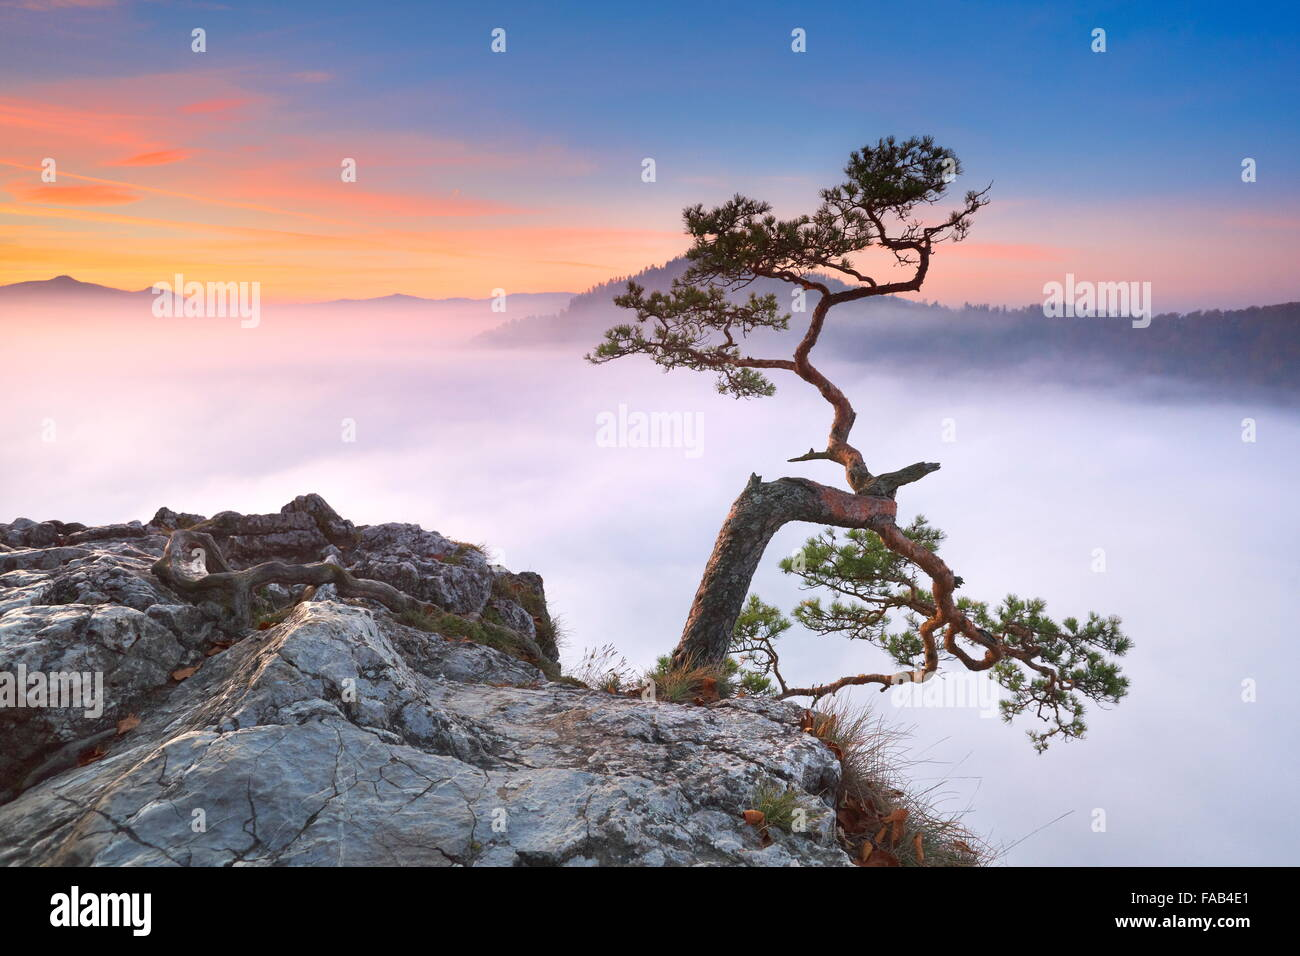 Single alone tree at Pieniny Mountains, Poland - Stock Image